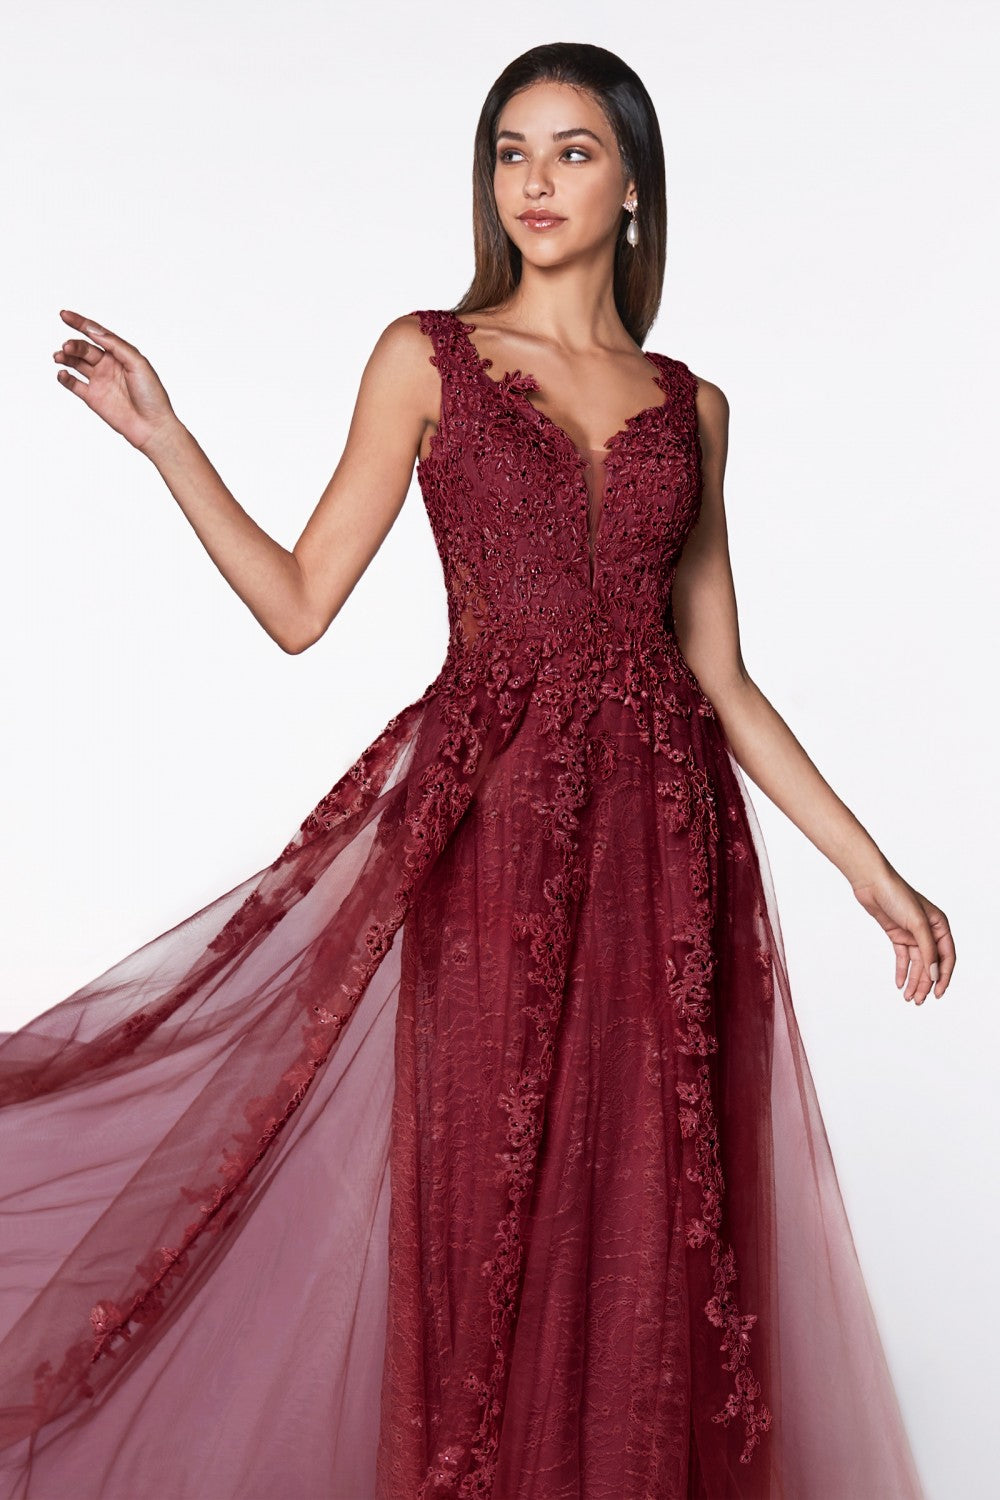 Flowy A-Line Lace And Tulle Dress With Deep V-Neckline And Open Back